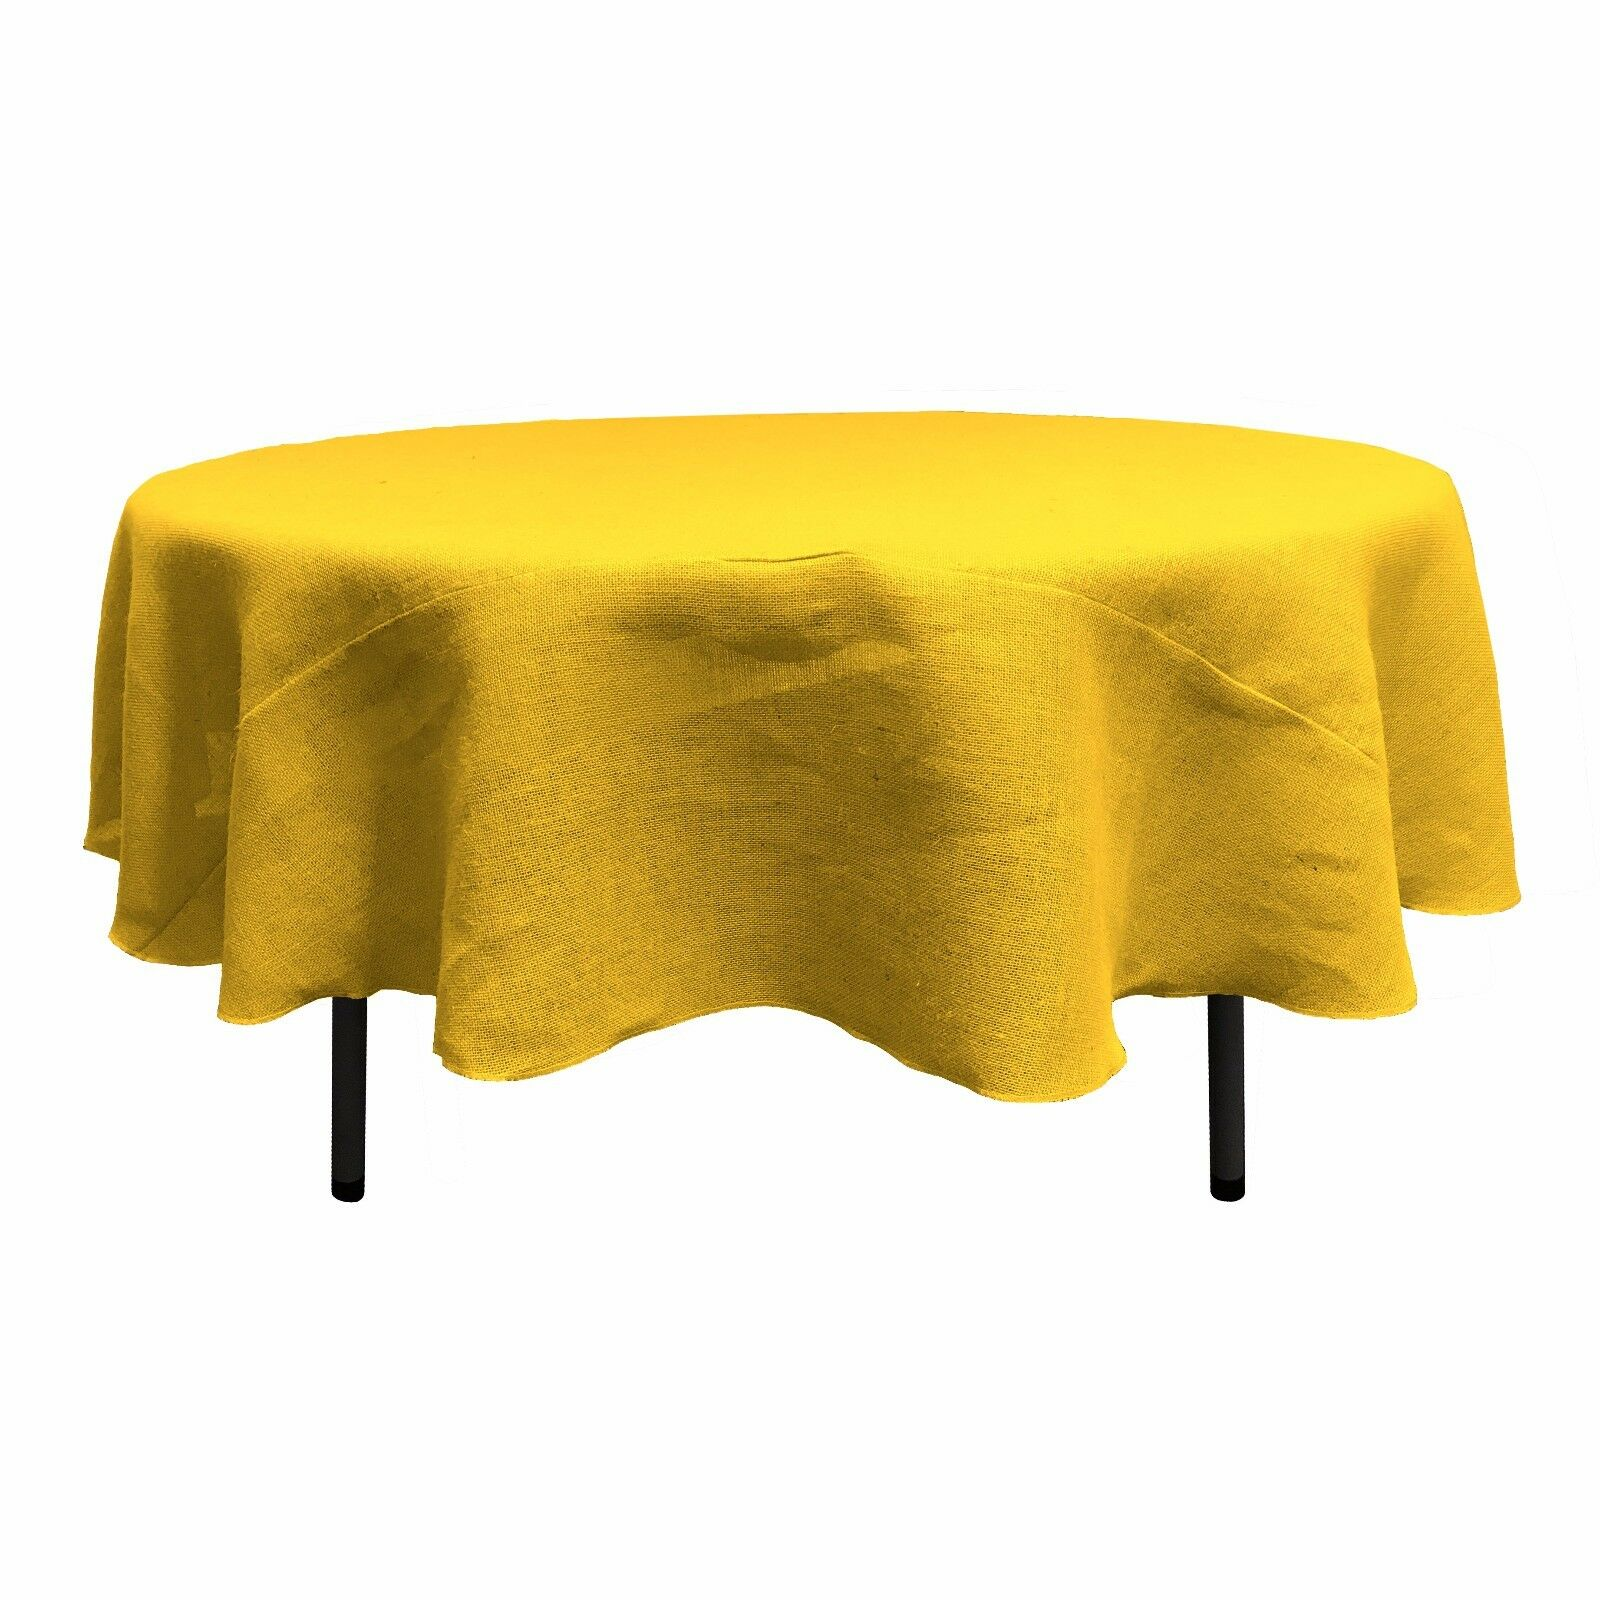 natural burlap tablecloth 90 inch round made